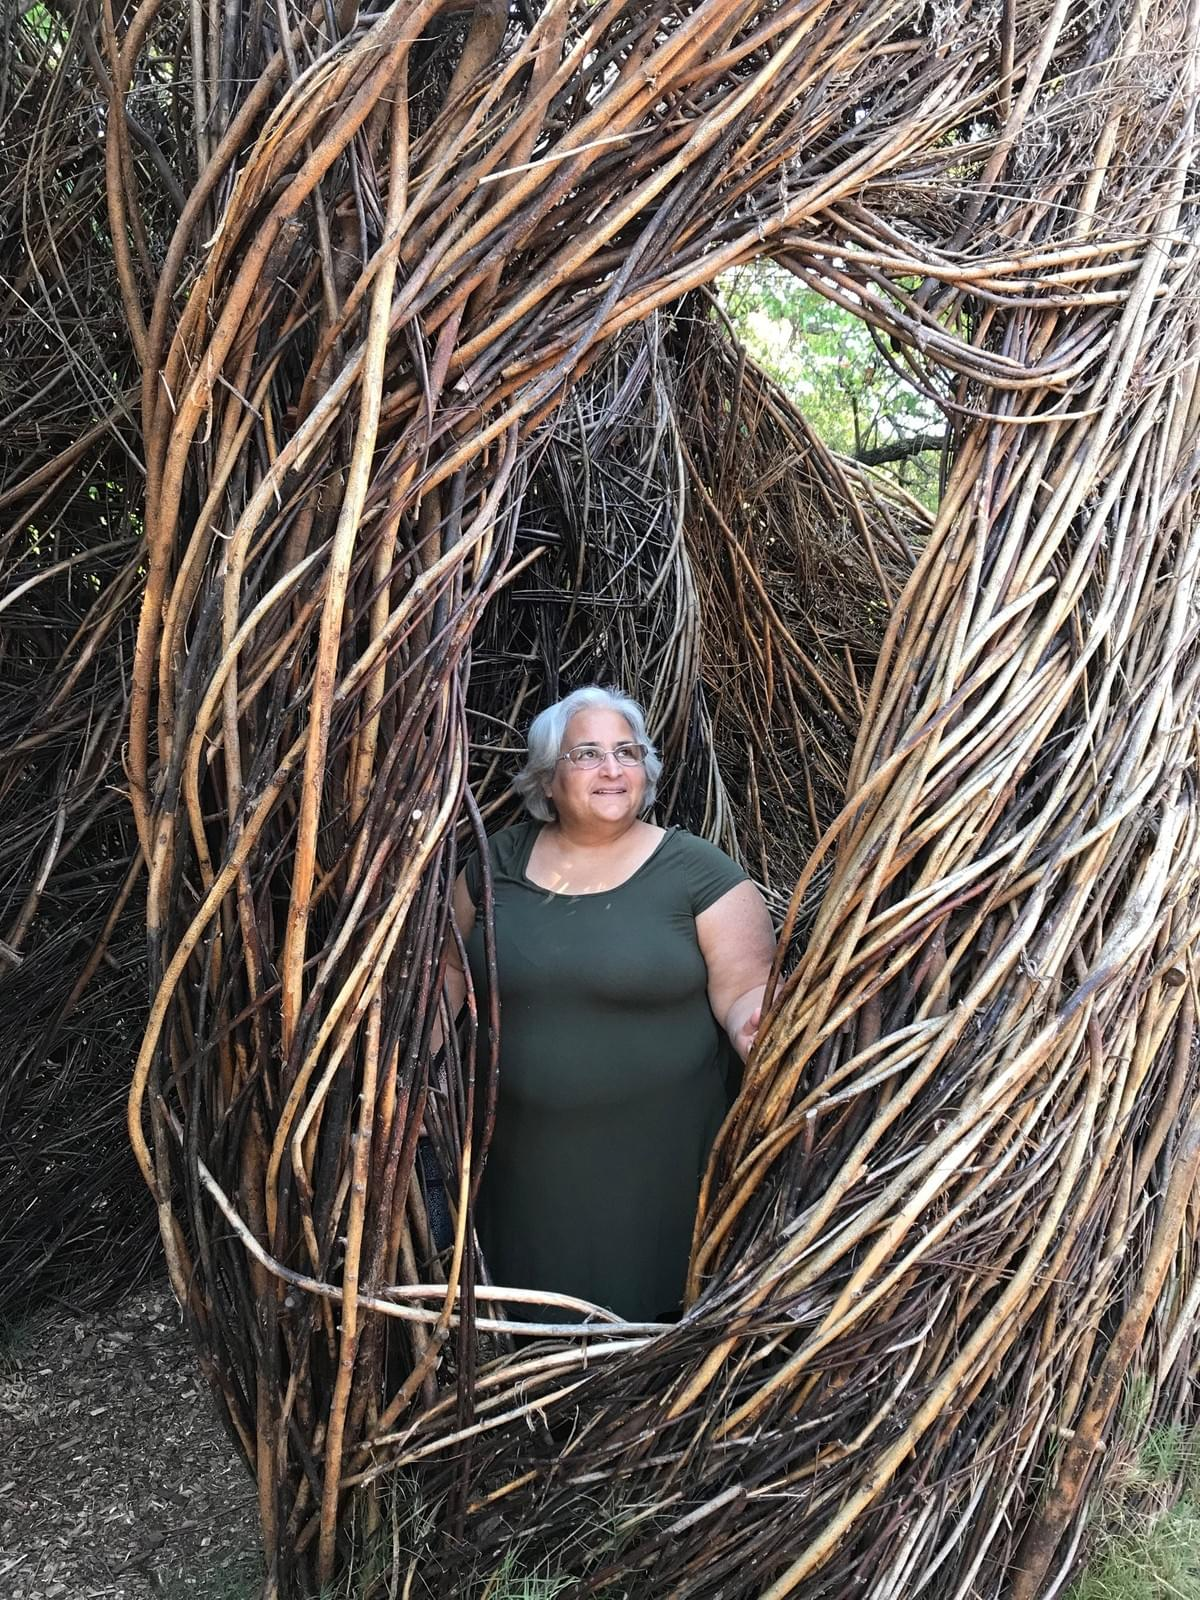 Image of Emily Levy looking through opening in sculpture made of branches